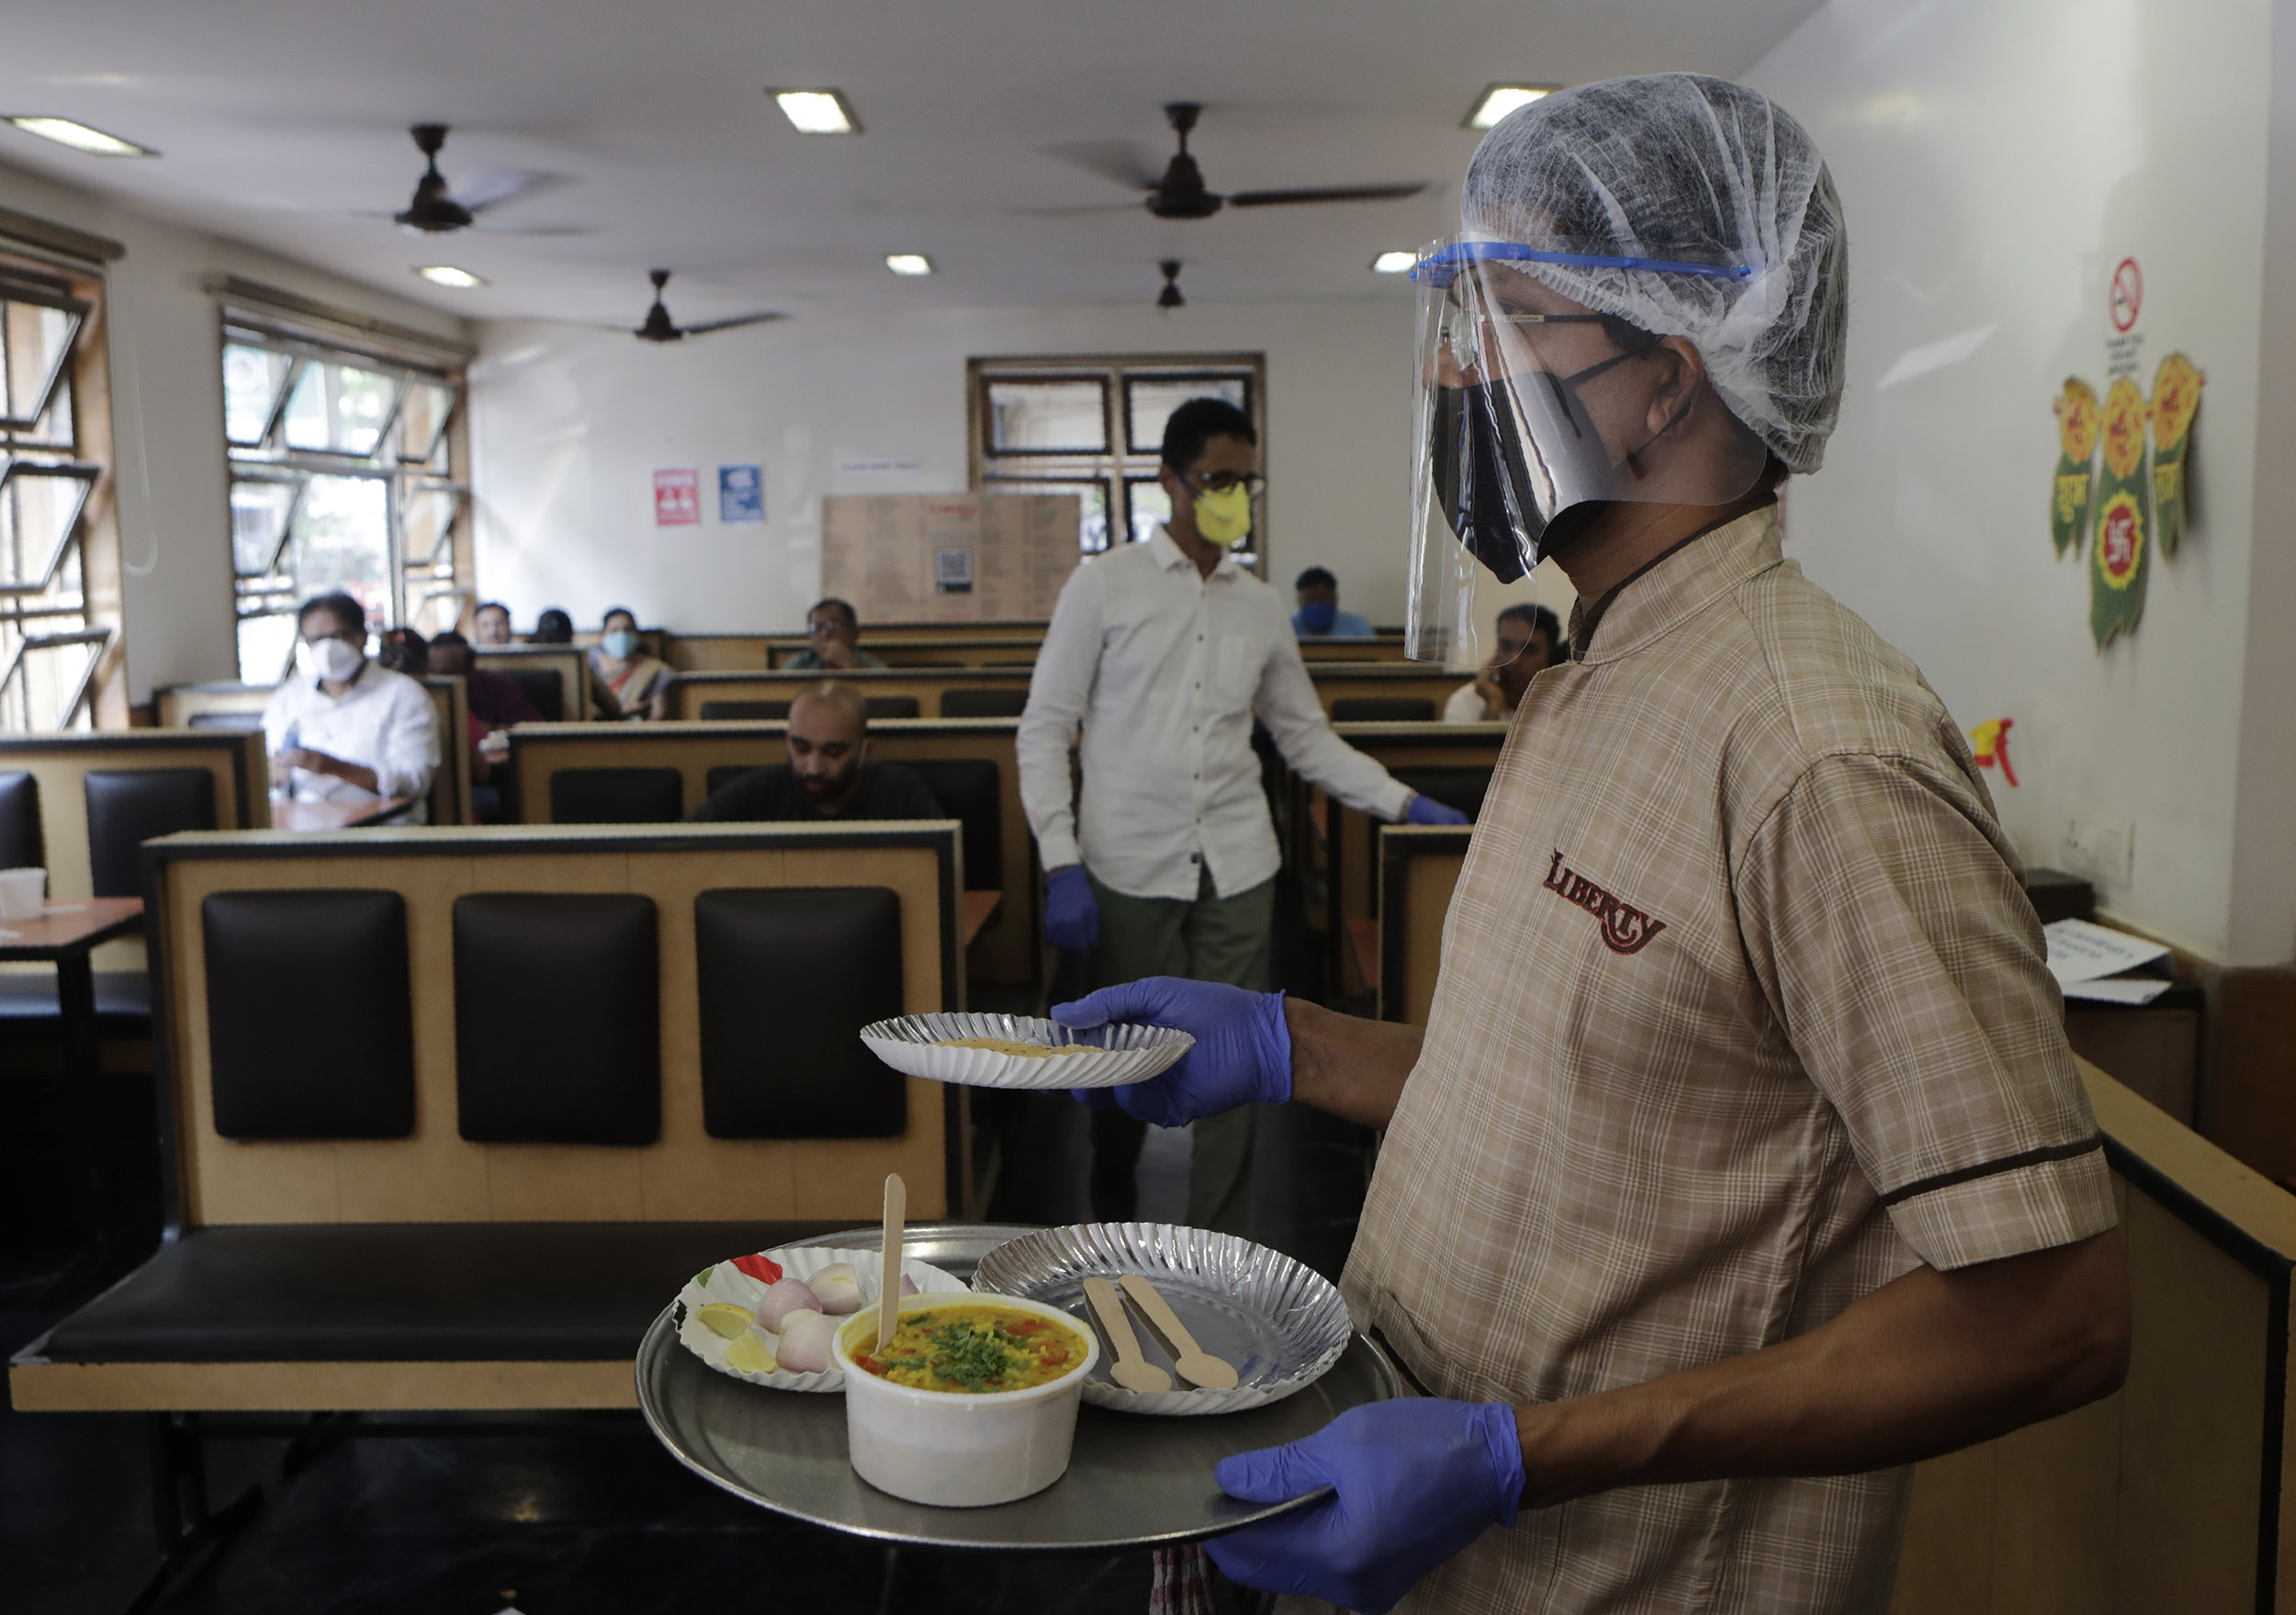 A waiter serves food to customers at a hotel in Mumbai, India, on Monday, October 5.